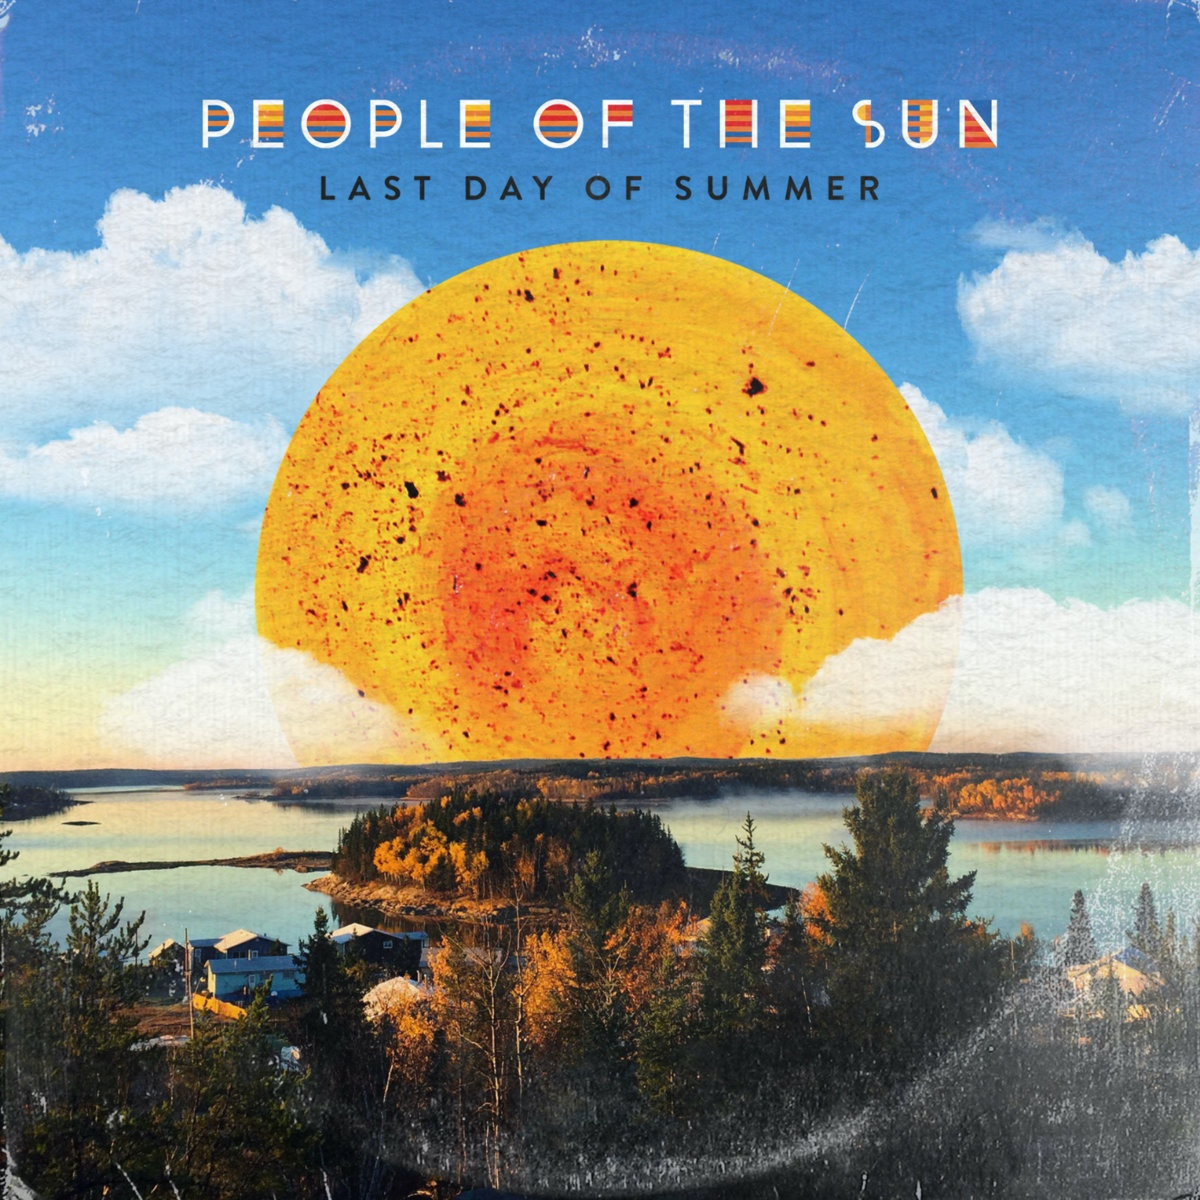 People of the Sun Shine Their Light Just When We Need It Most on 'Last Day of Summer'